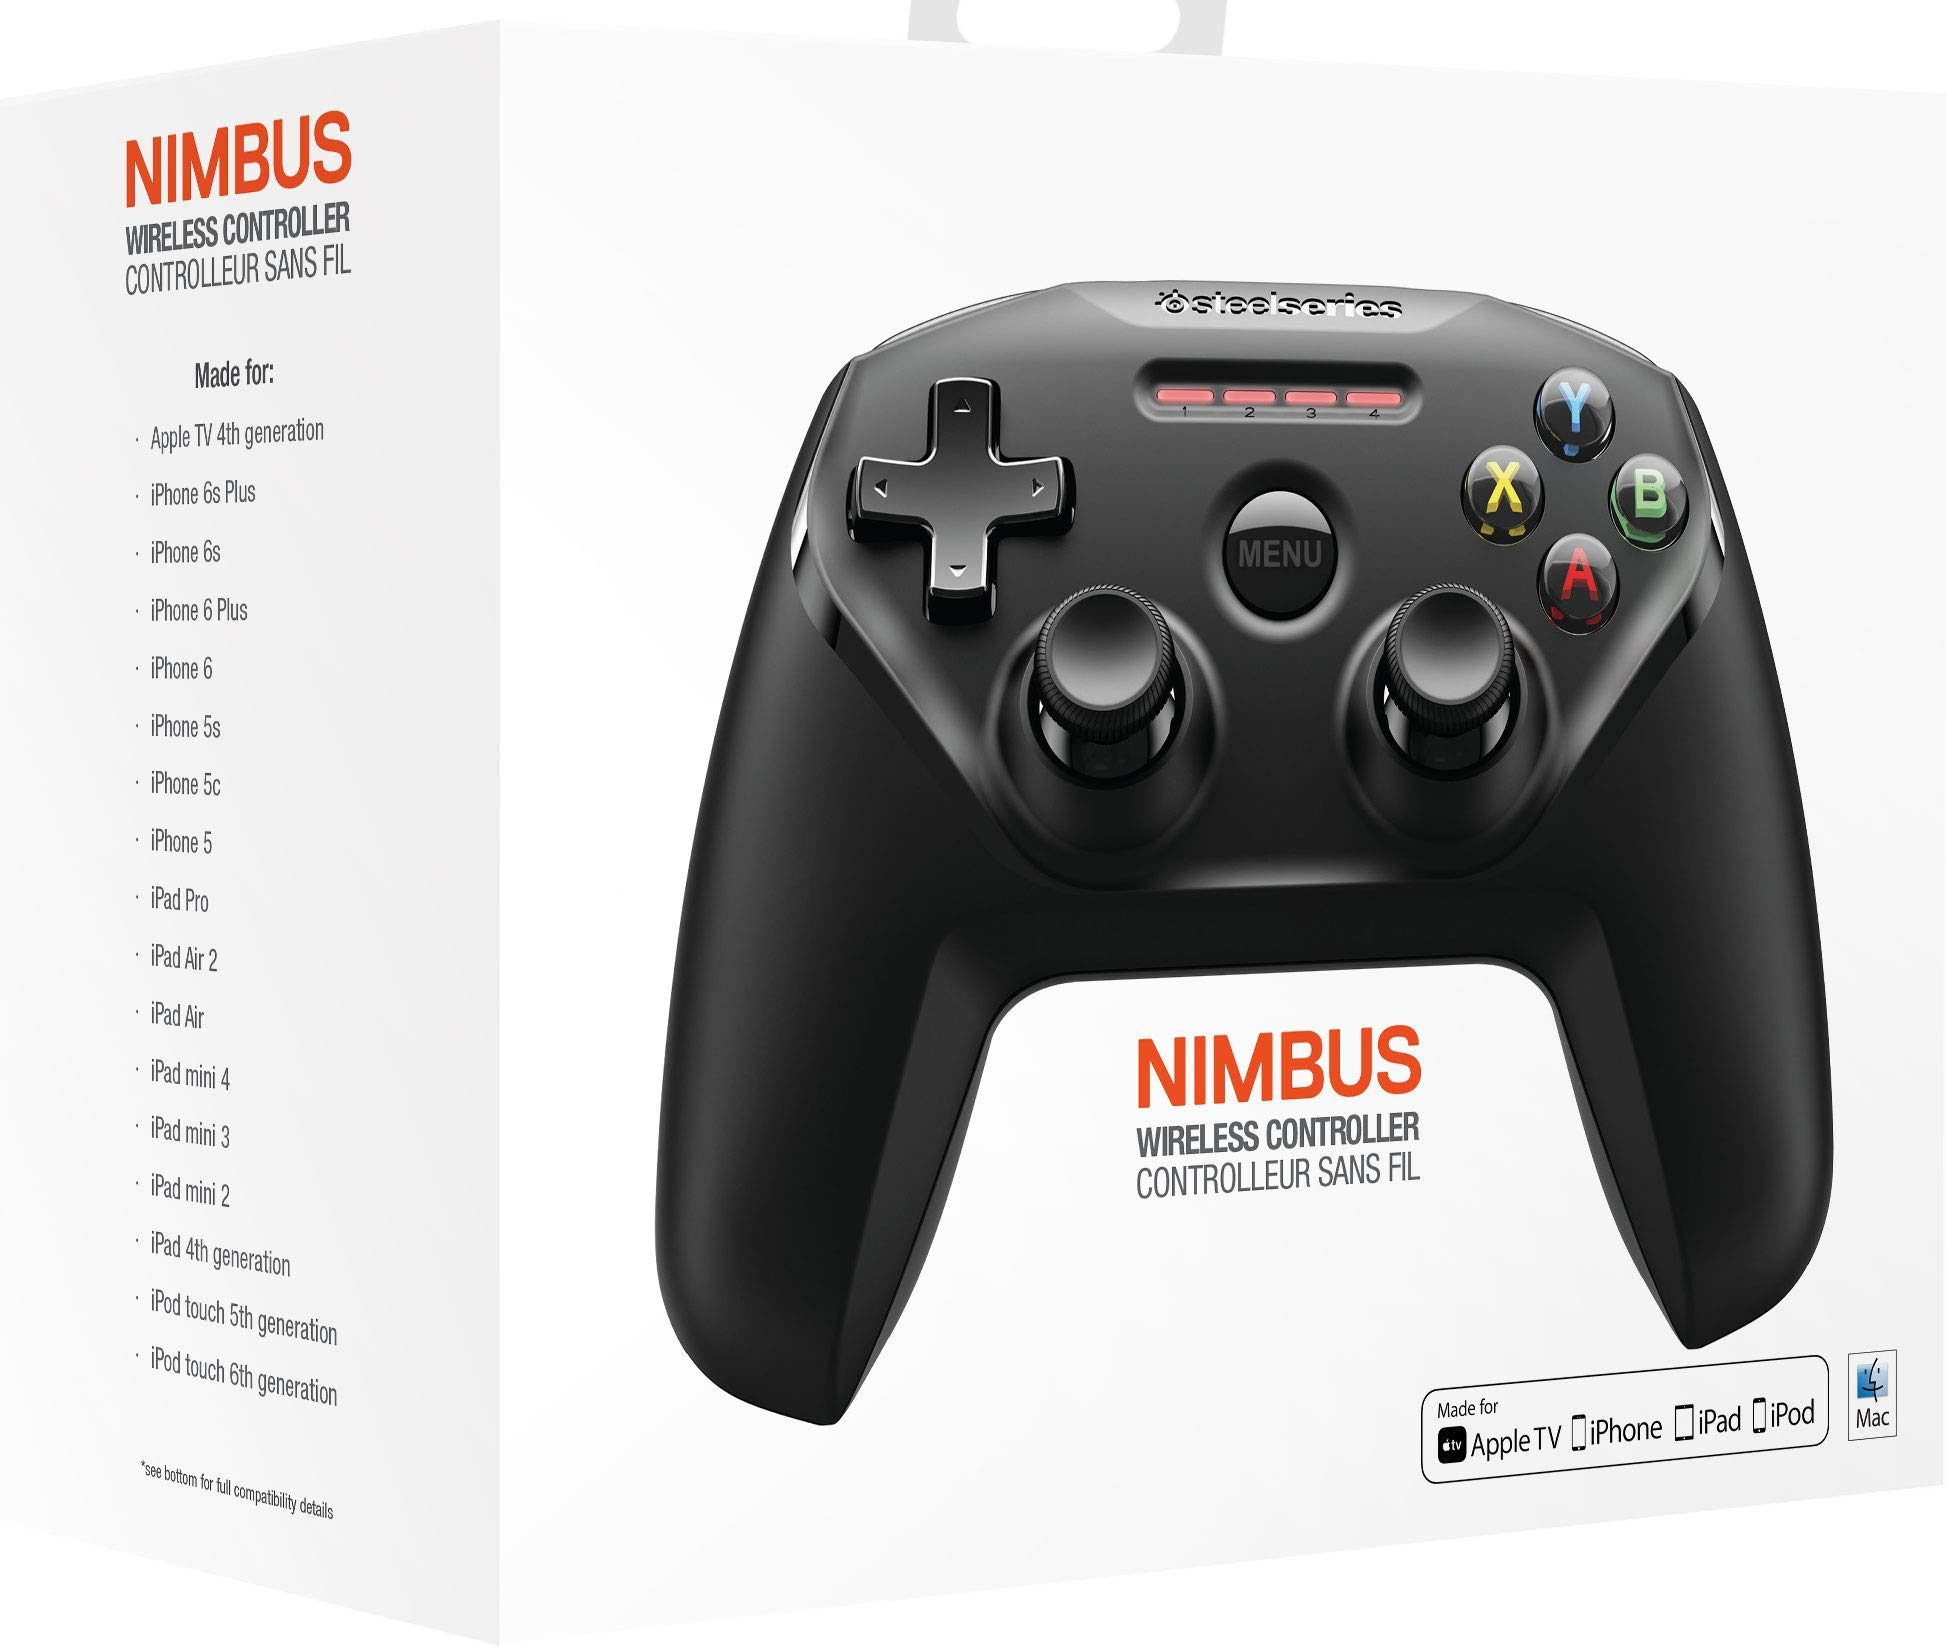 SteelSeries Nimbus Bluetooth Mobile Gaming Controller - IPhone, iPad, Apple TV - 40+ Hour Battery Life - Mfi Certified - Supports Fortnite Mobile by SteelSeries (Image #8)